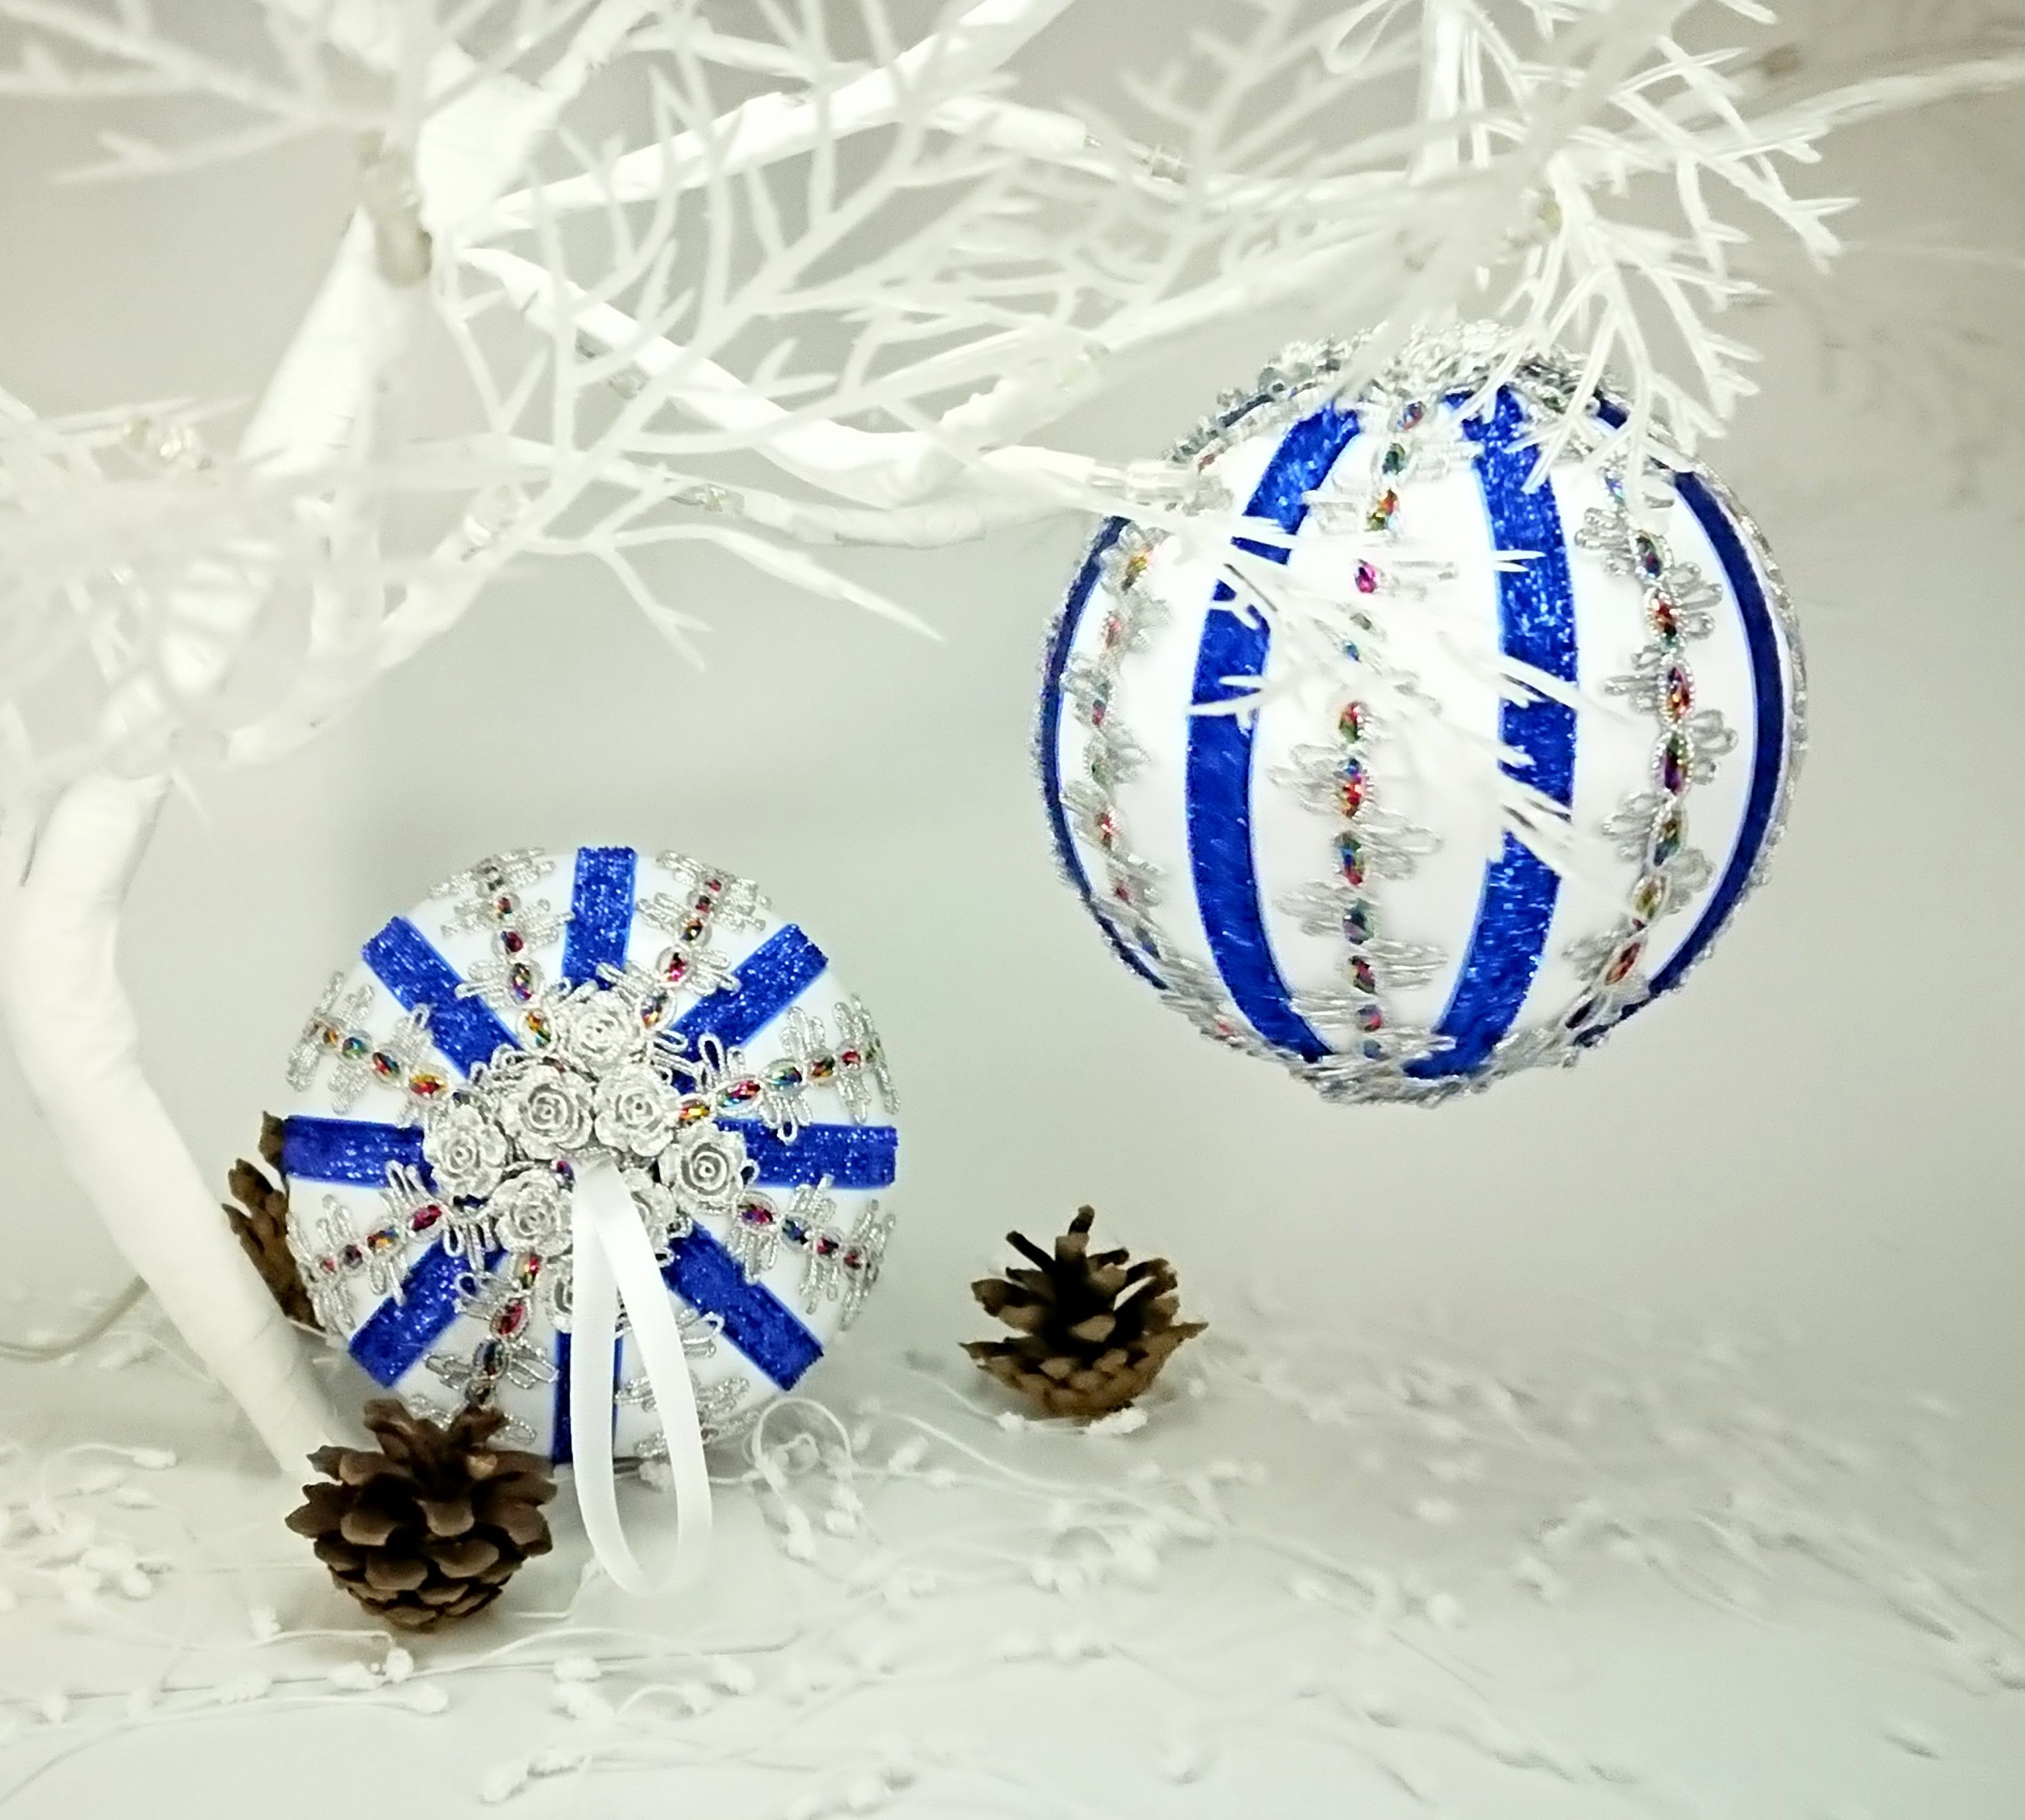 2020 Satin Christmas Year Ornament White blue Christmas baubles Satin ornaments Hand crafted | Etsy